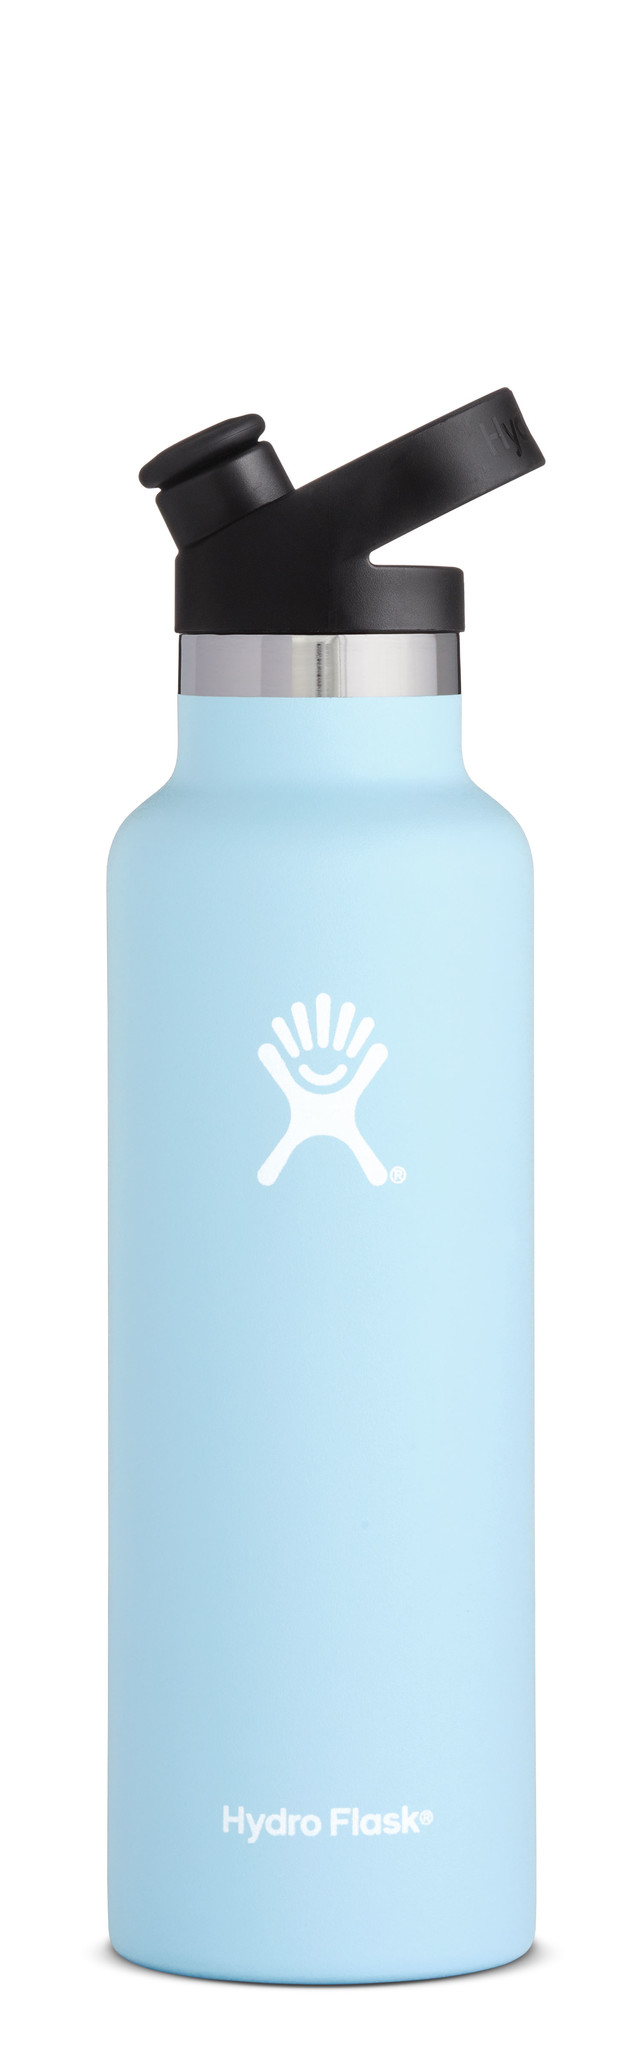 Hydro Flask 21oz Standard Mouth with Sport Cap-6